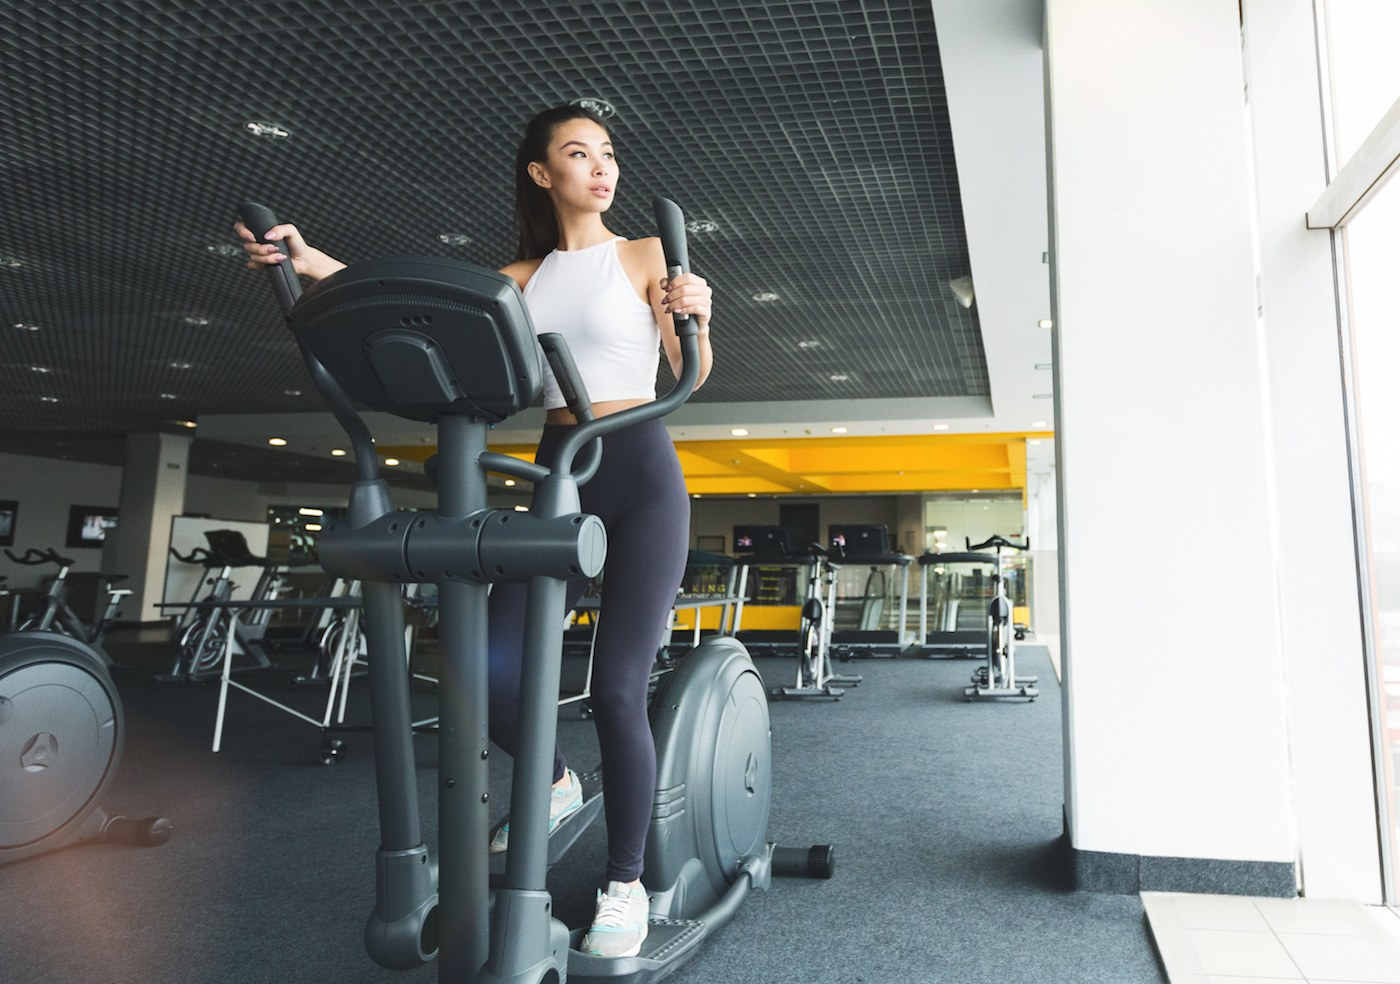 5 of the most common mistakes trainers see people make on the elliptical